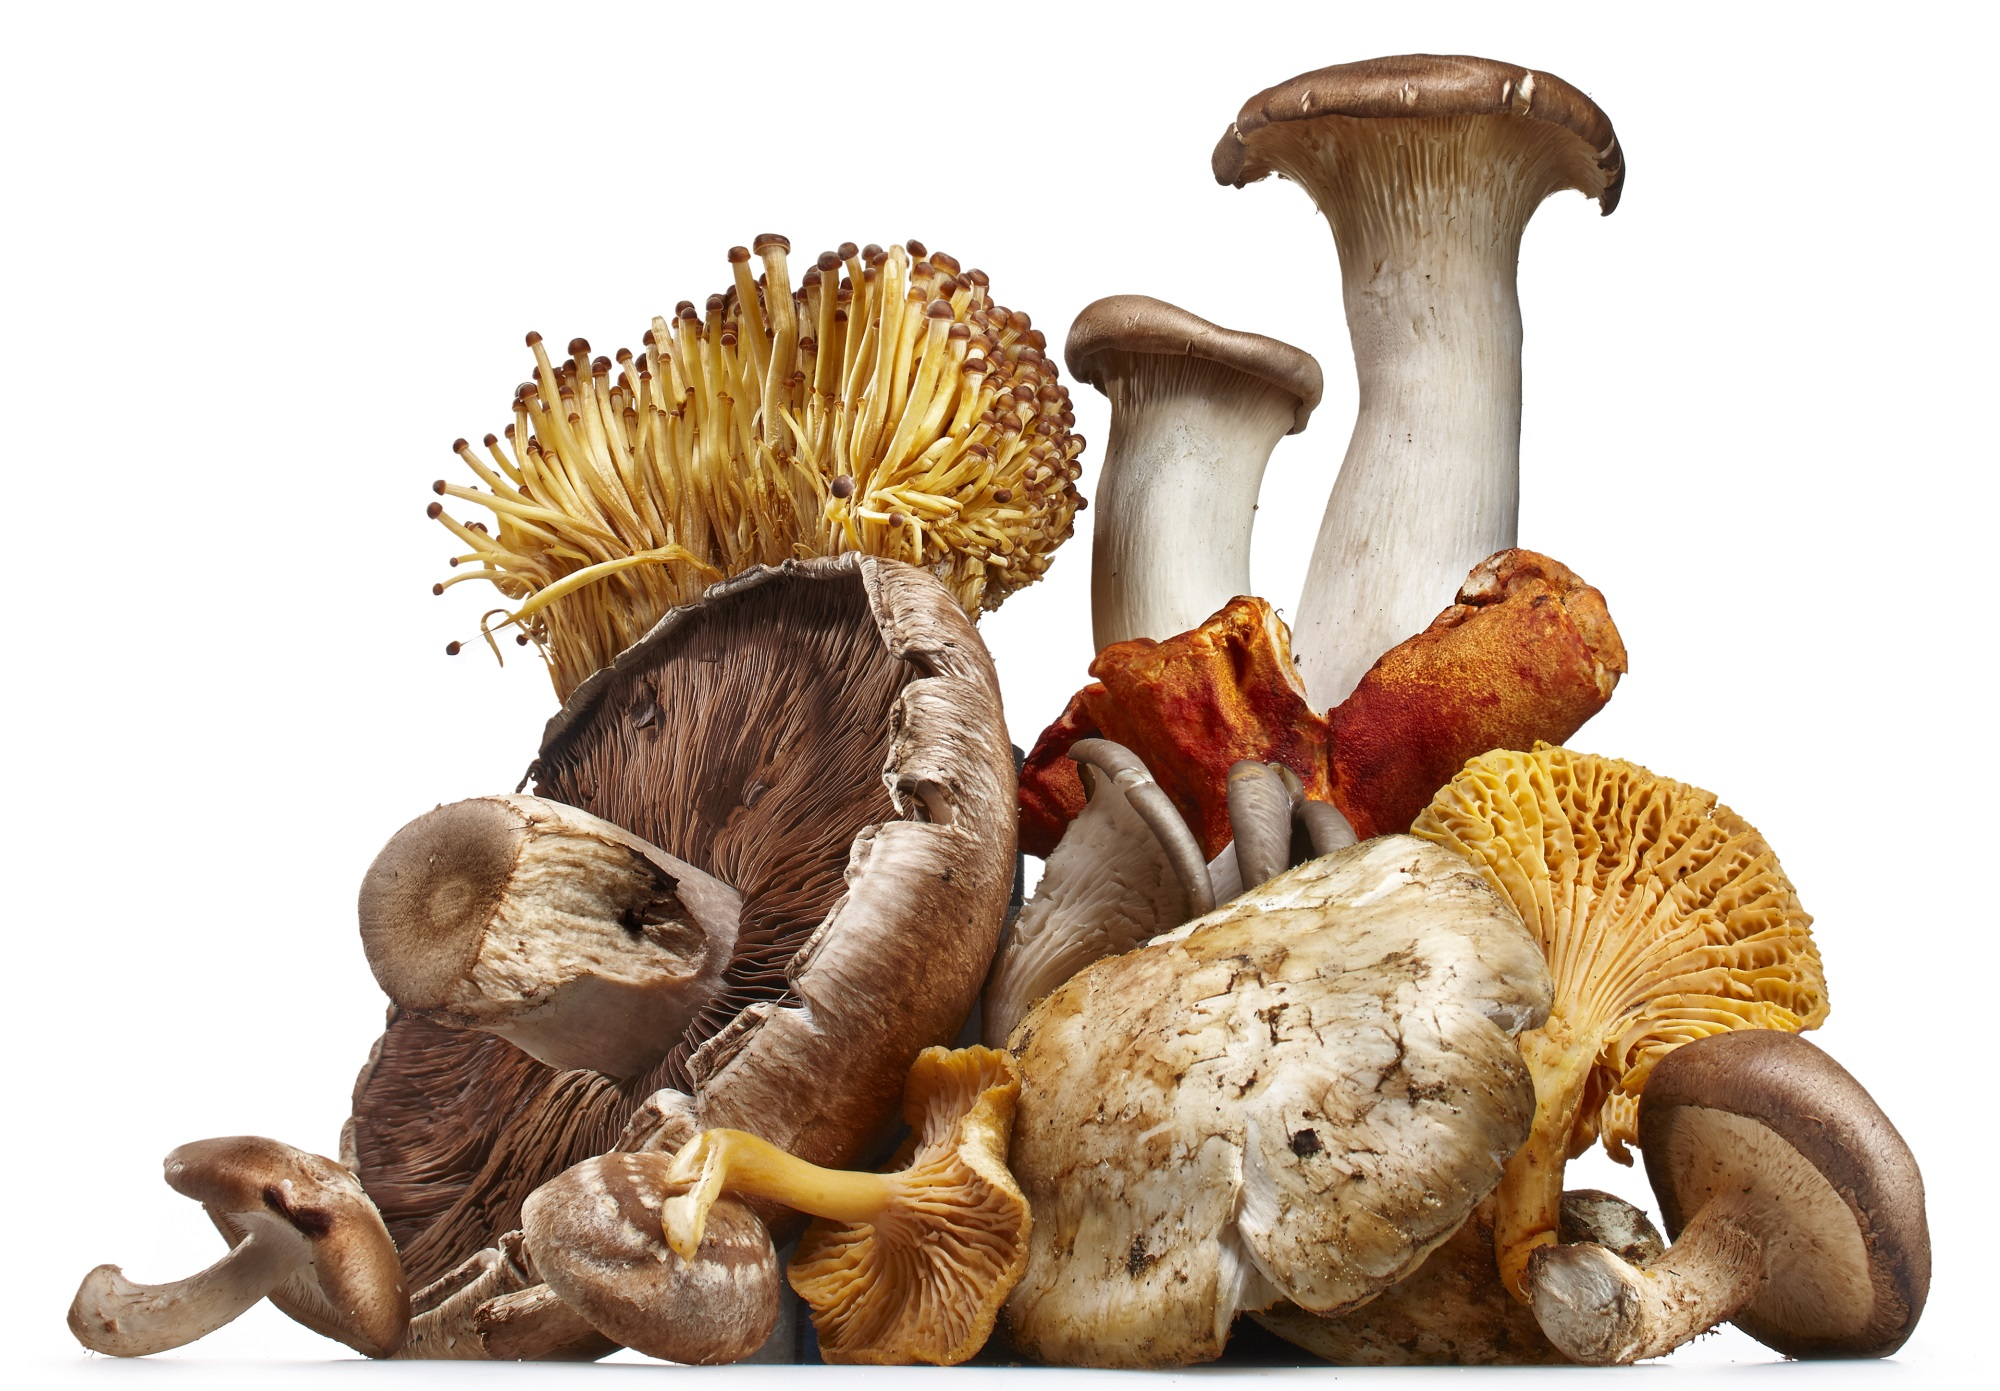 Mushrooms May Lower Prostate Cancer Risk - Renal and Urology News